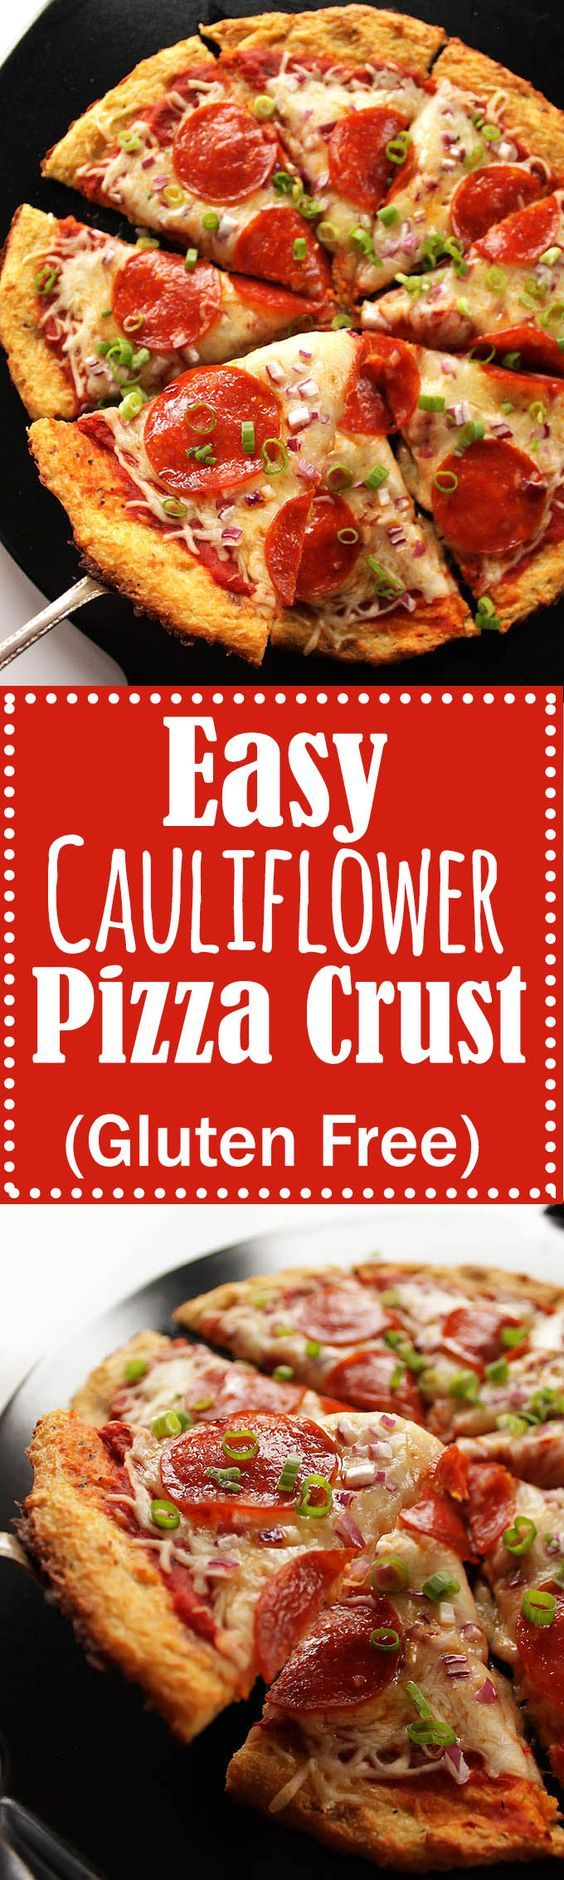 Easy Cauliflower Pizza Crust - The trick is to use frozen, thawed cauliflower florets! A HEALTHY, delicious, pizza crust that won't fall apart! Gluten Free | robustrecipes.com